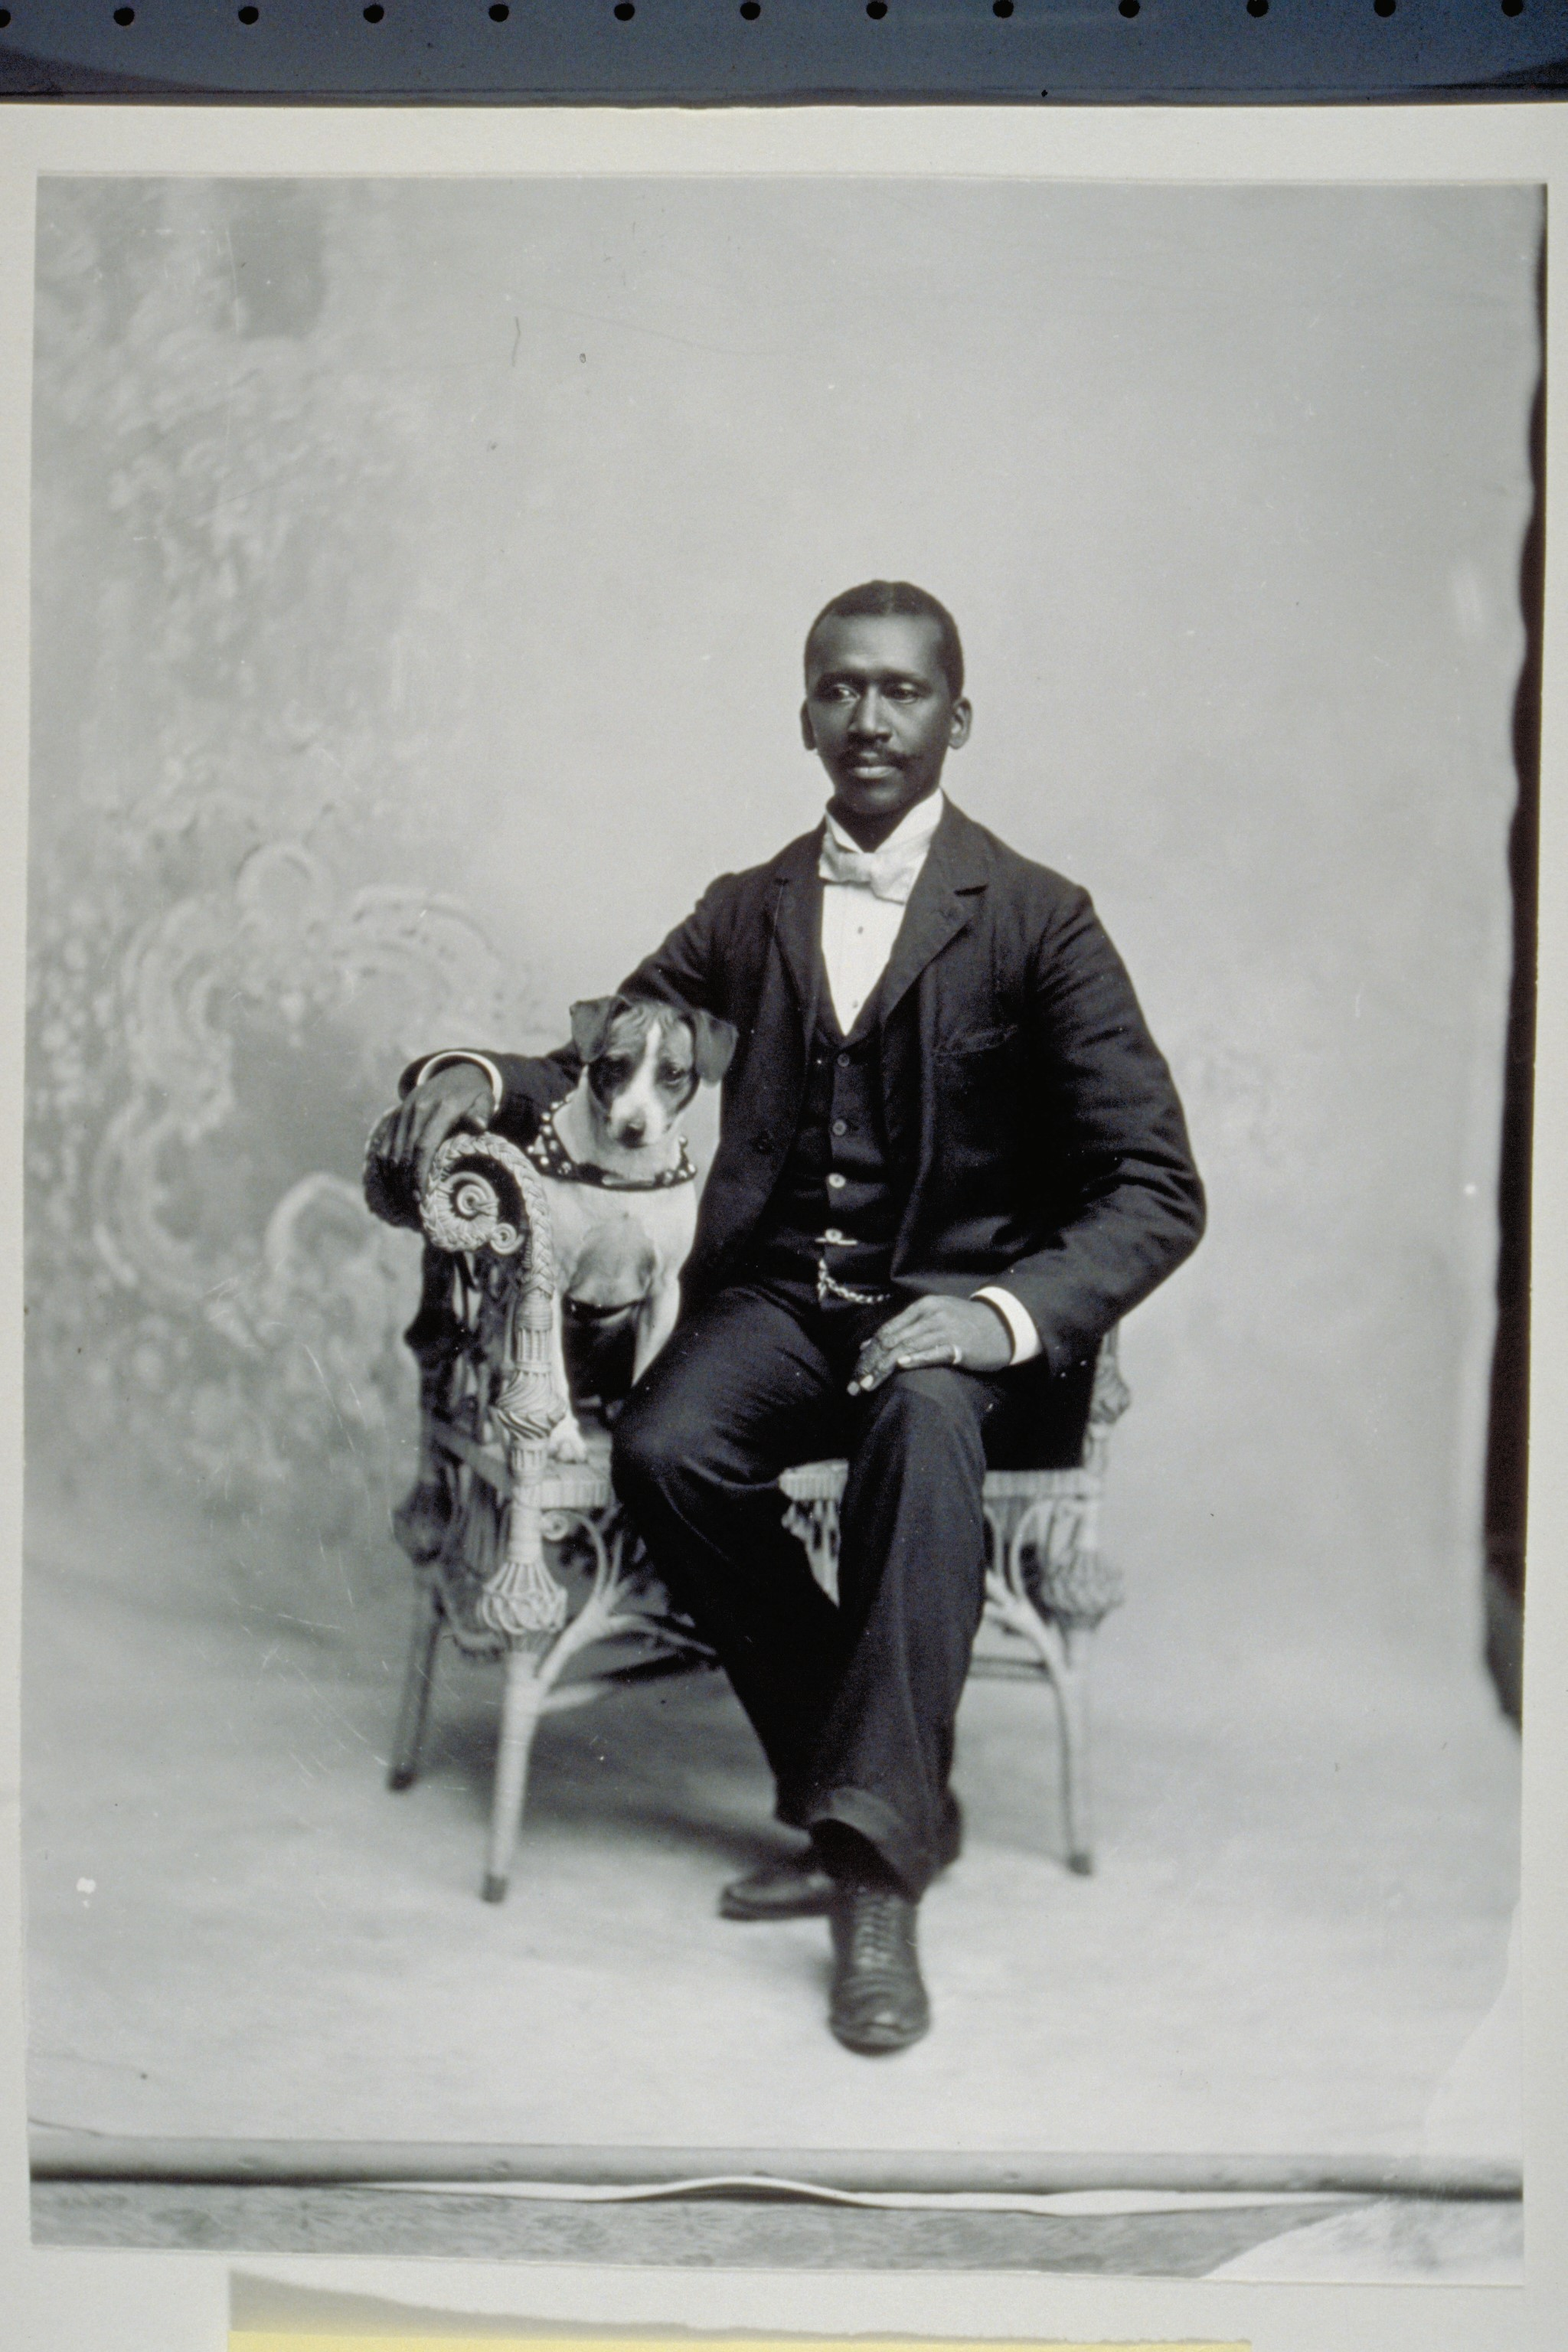 "Studio portrait of a black man identified as Edward Wiggins. A dog sits beside him in a wicker chair. ""Edw. [Edward] Wiggins"" is scratched on the plate. Circa 1890-1899. Photo Credit: Mystic Seaport Museum MSM 1977.160.1171"